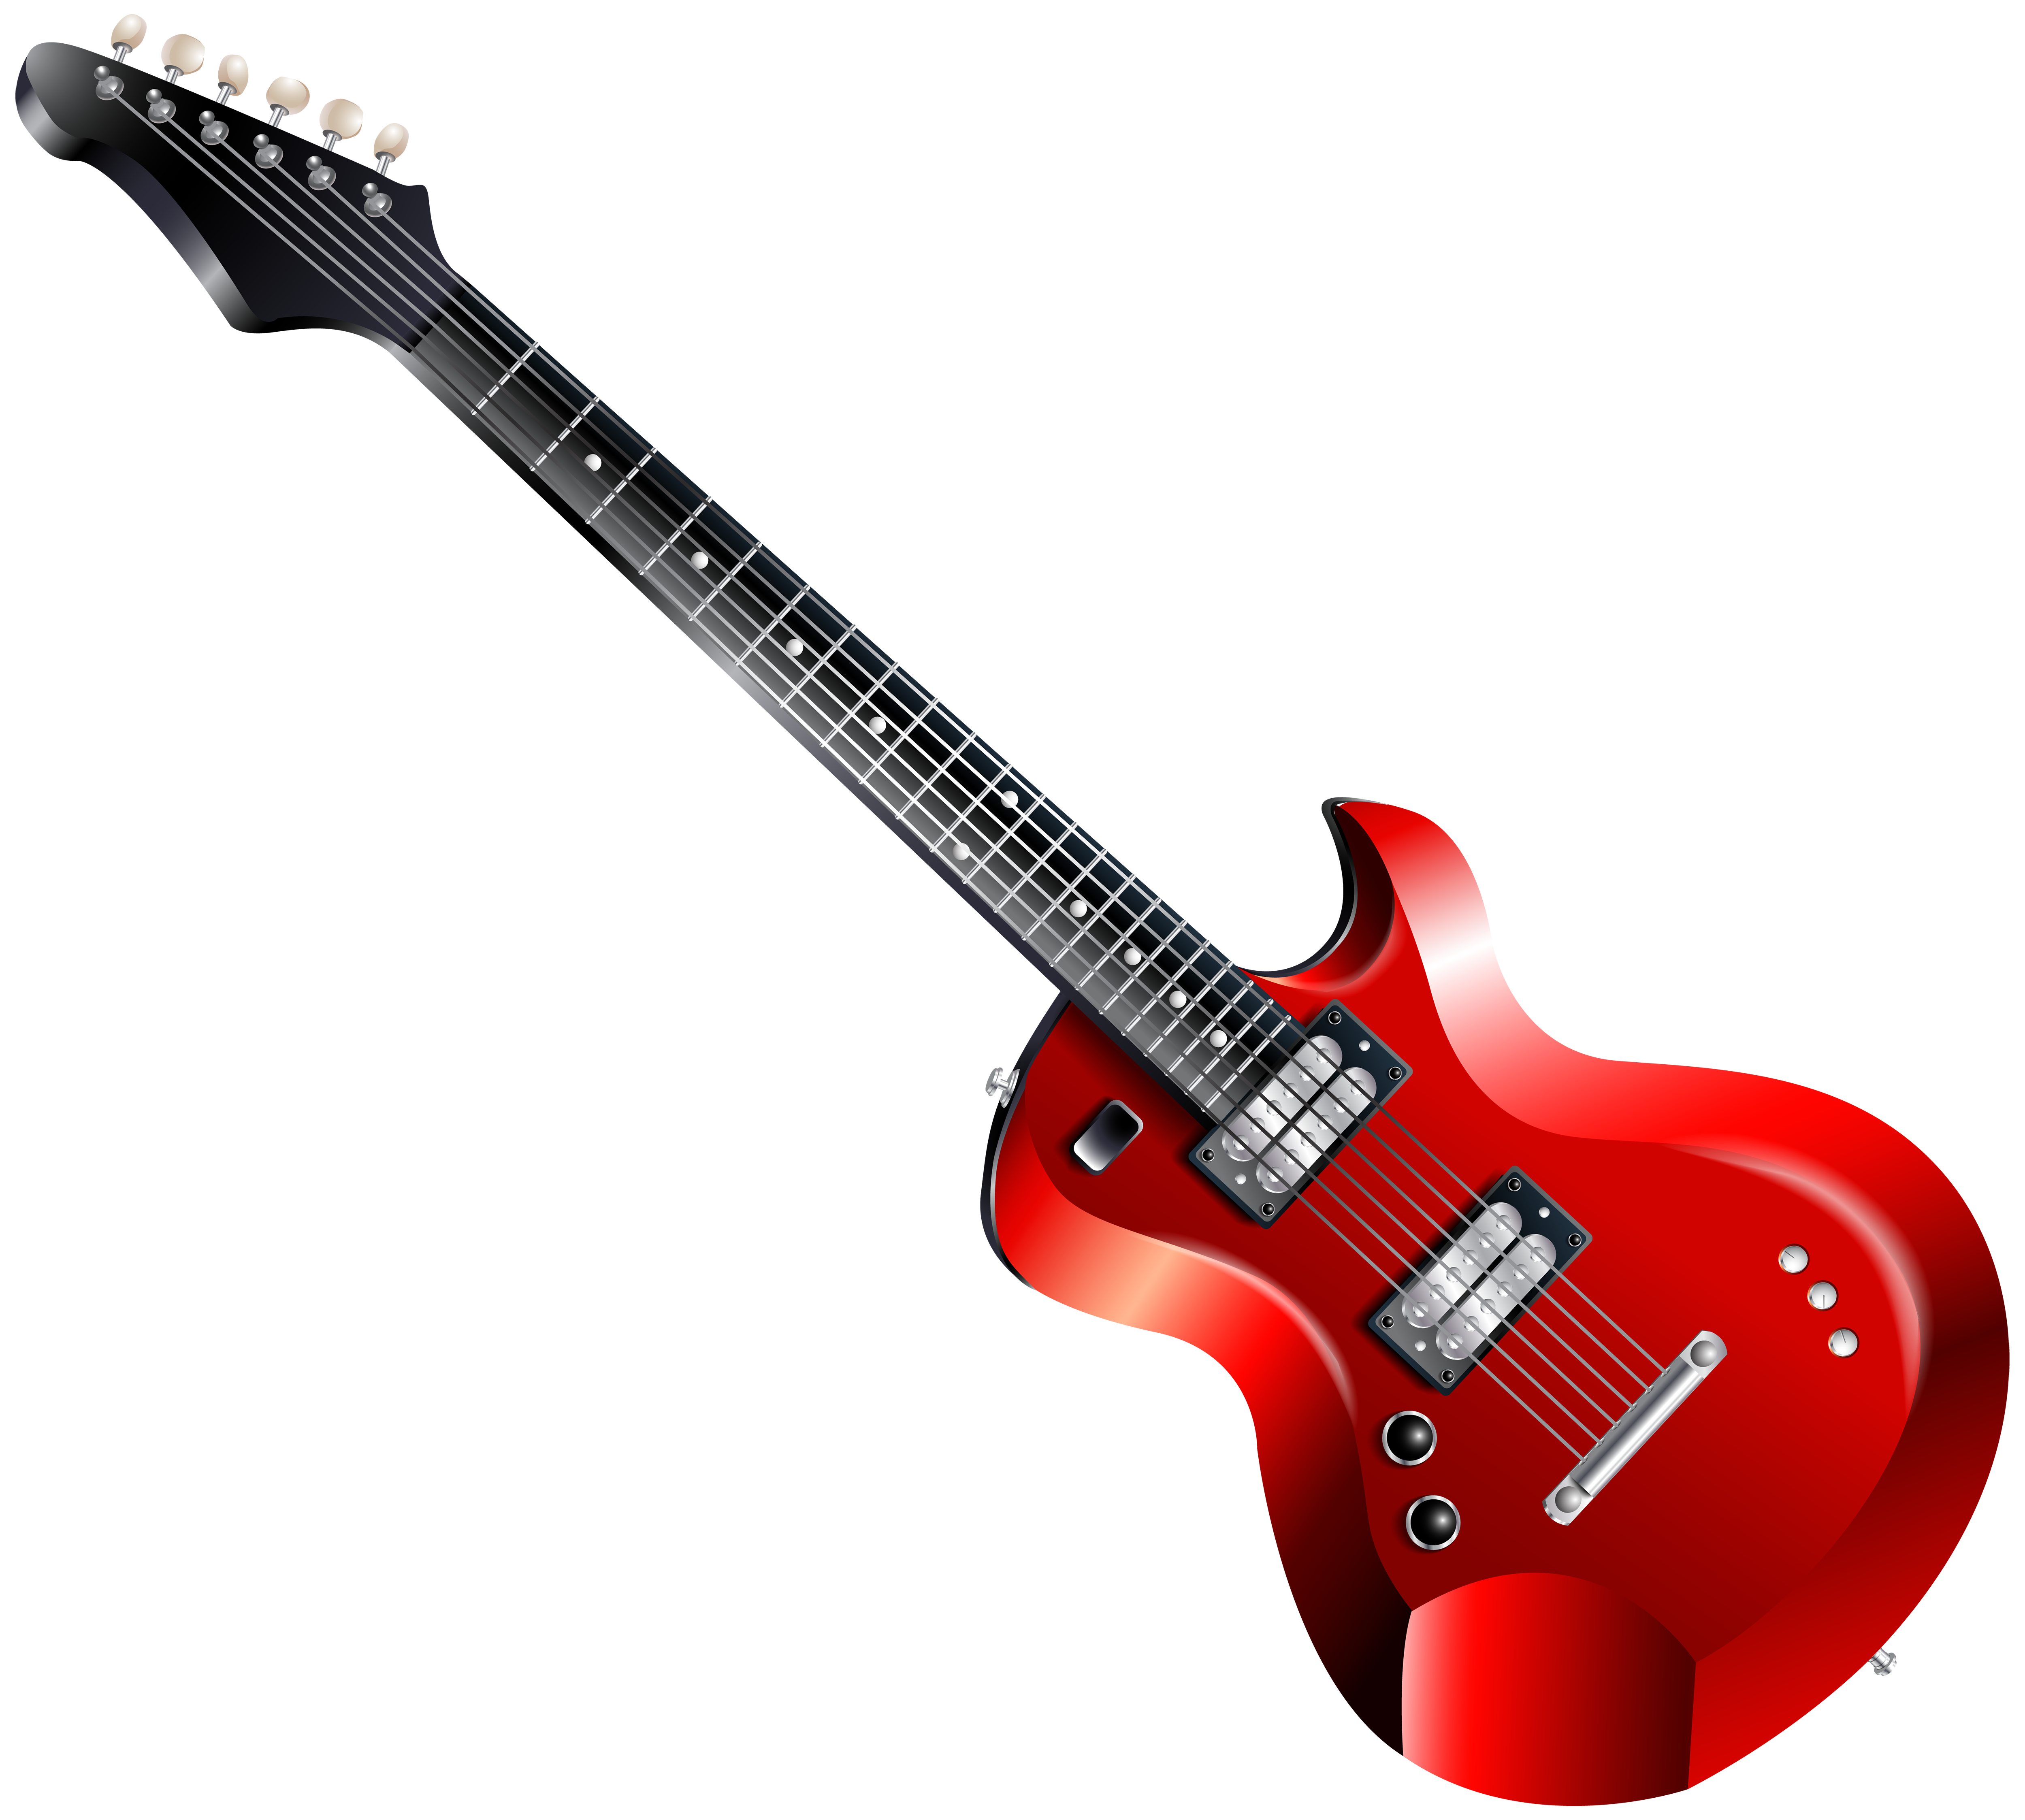 Download png free icons. Clipart guitar guitar piano